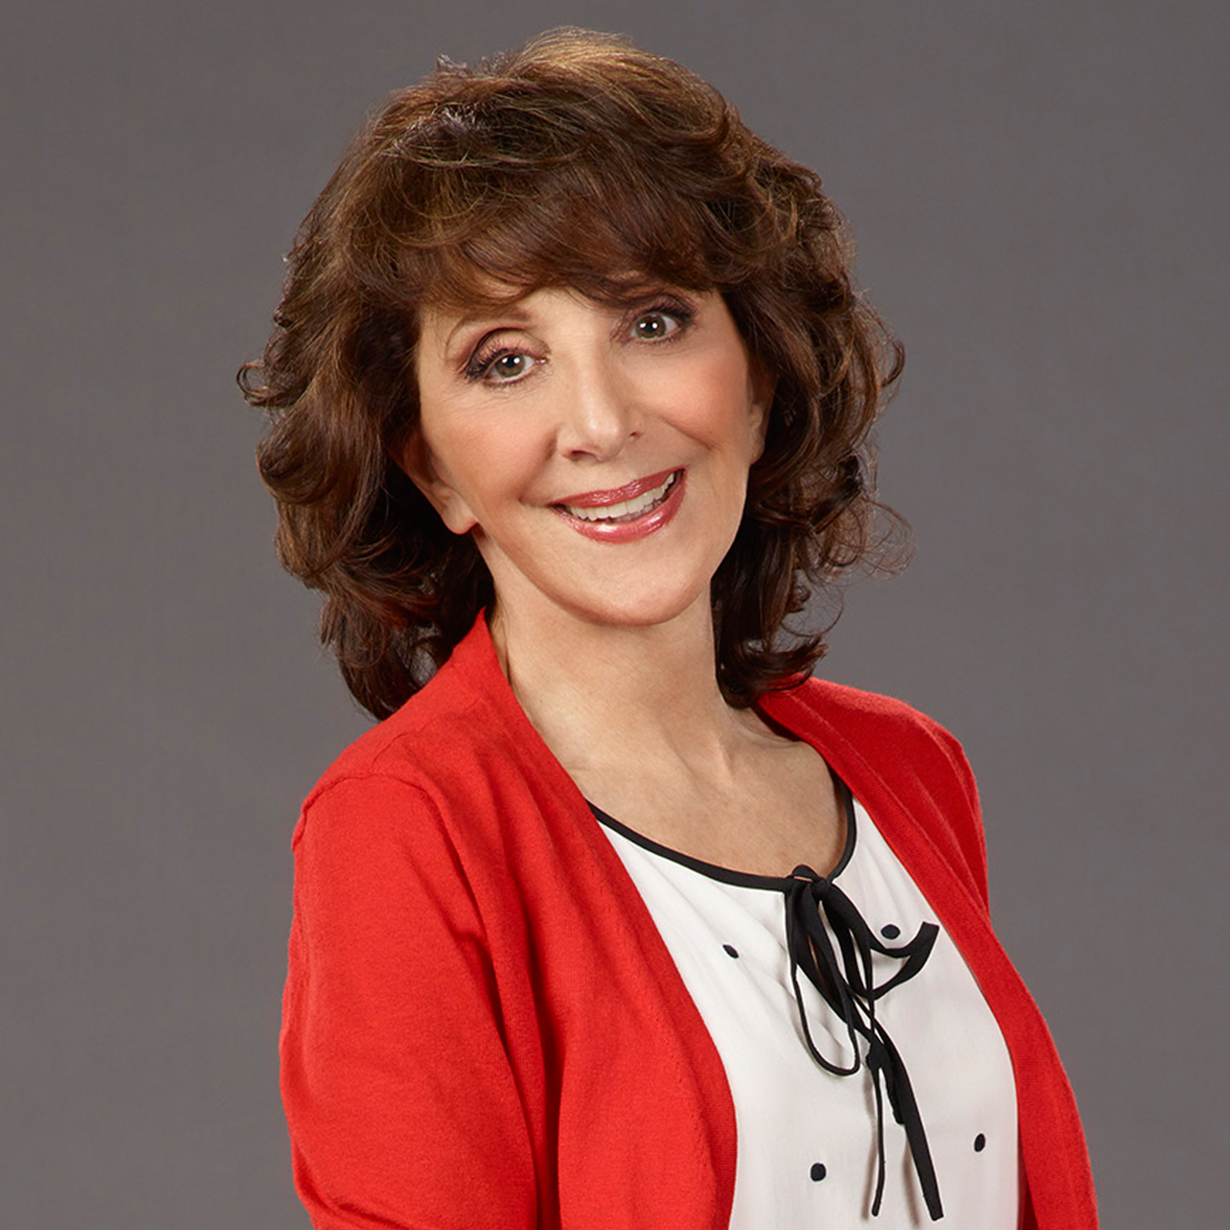 andrea martin height